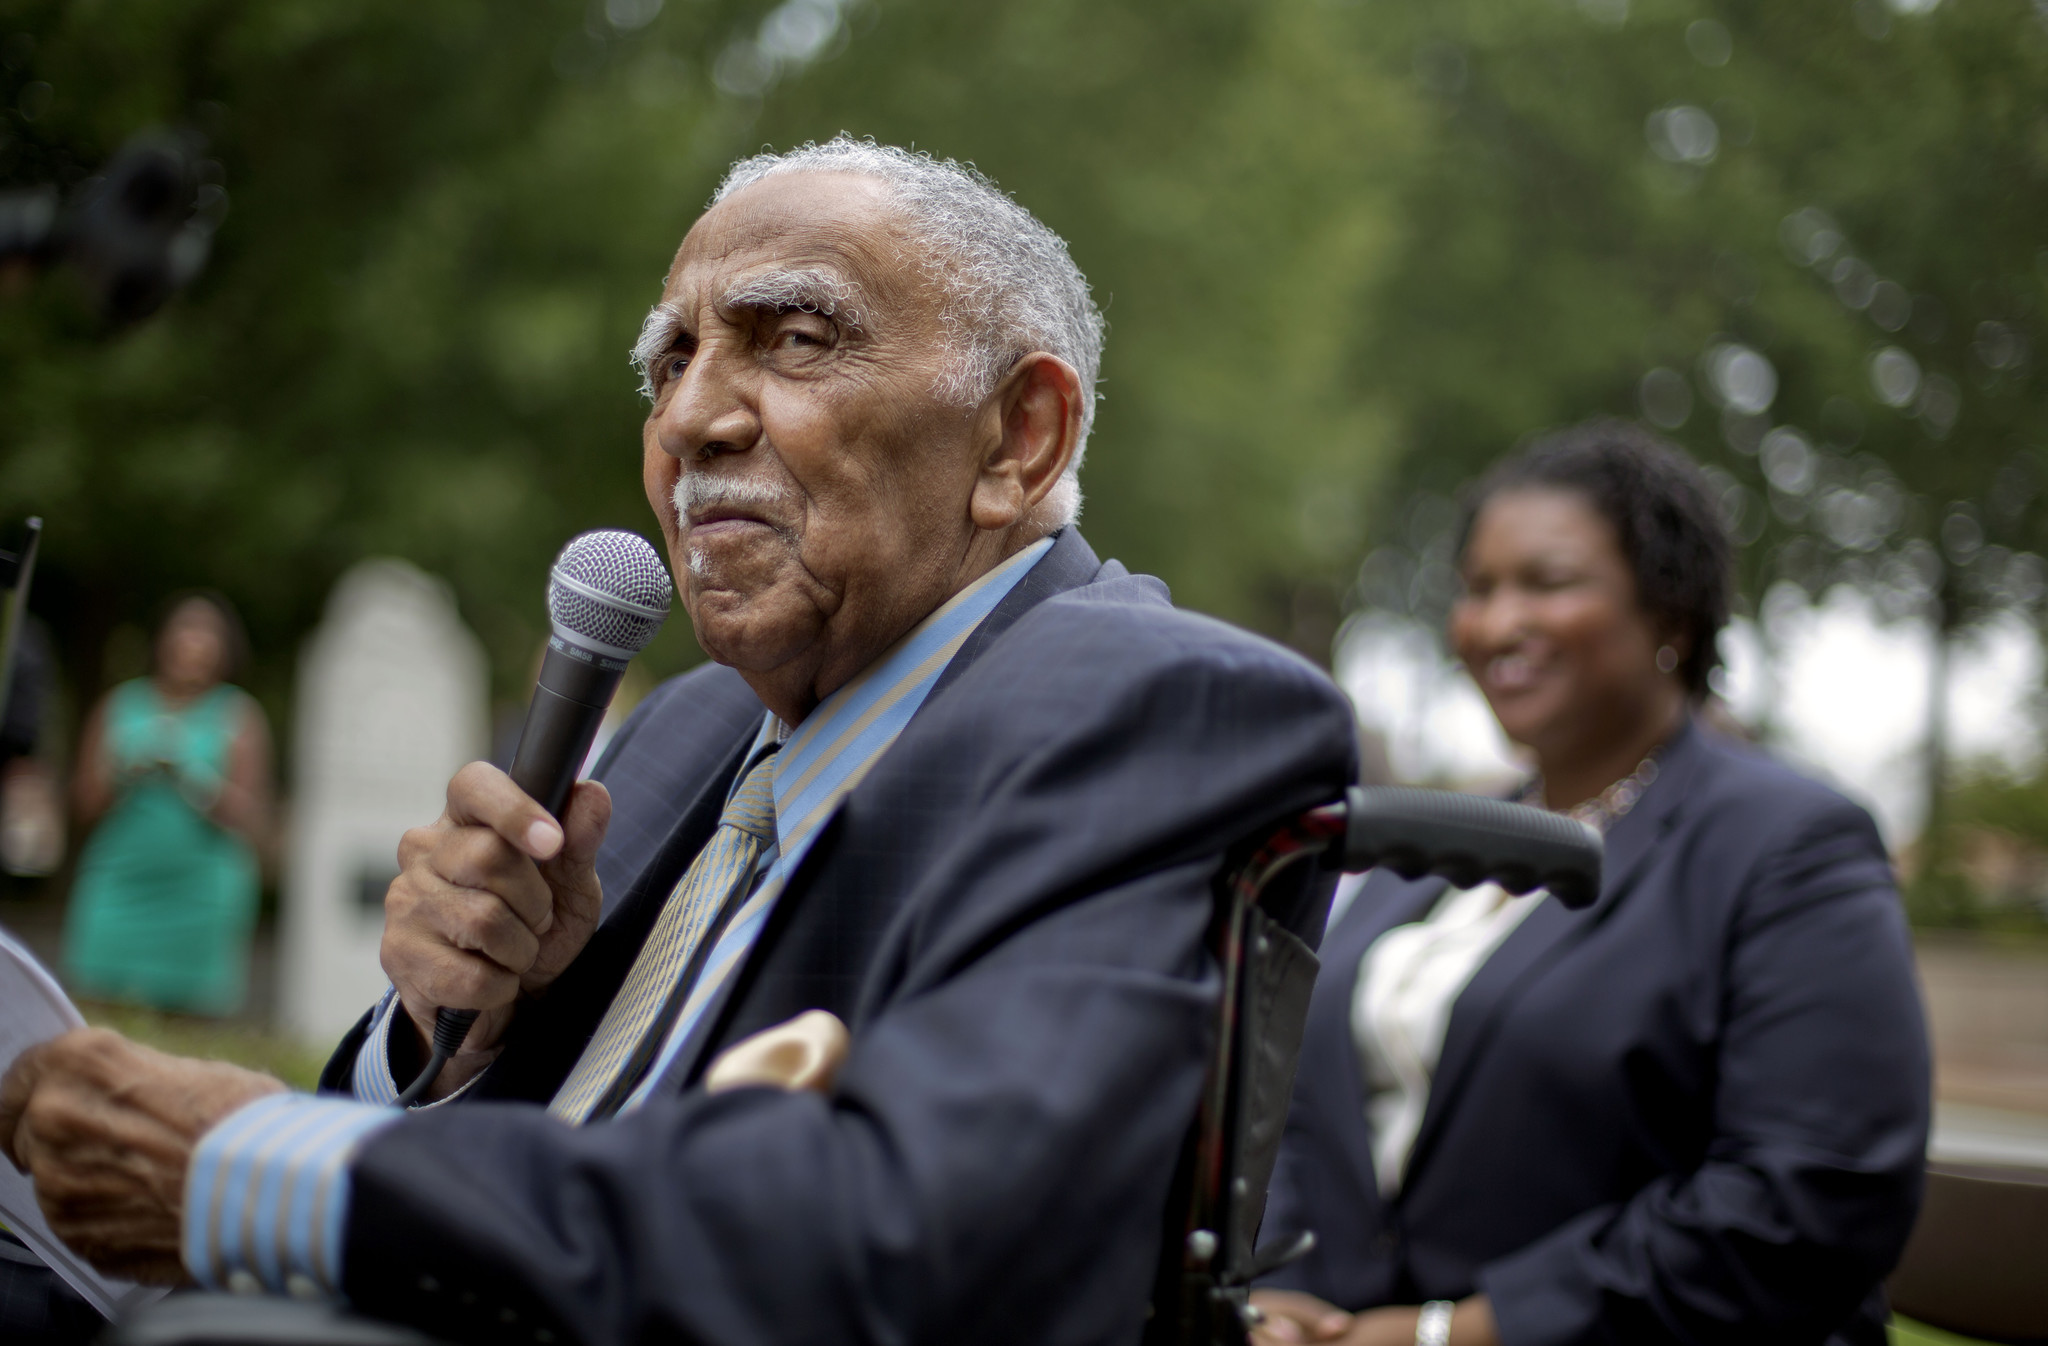 Rev. Joseph Lowery, 'Dean' of the civil rights movement, dies at 98